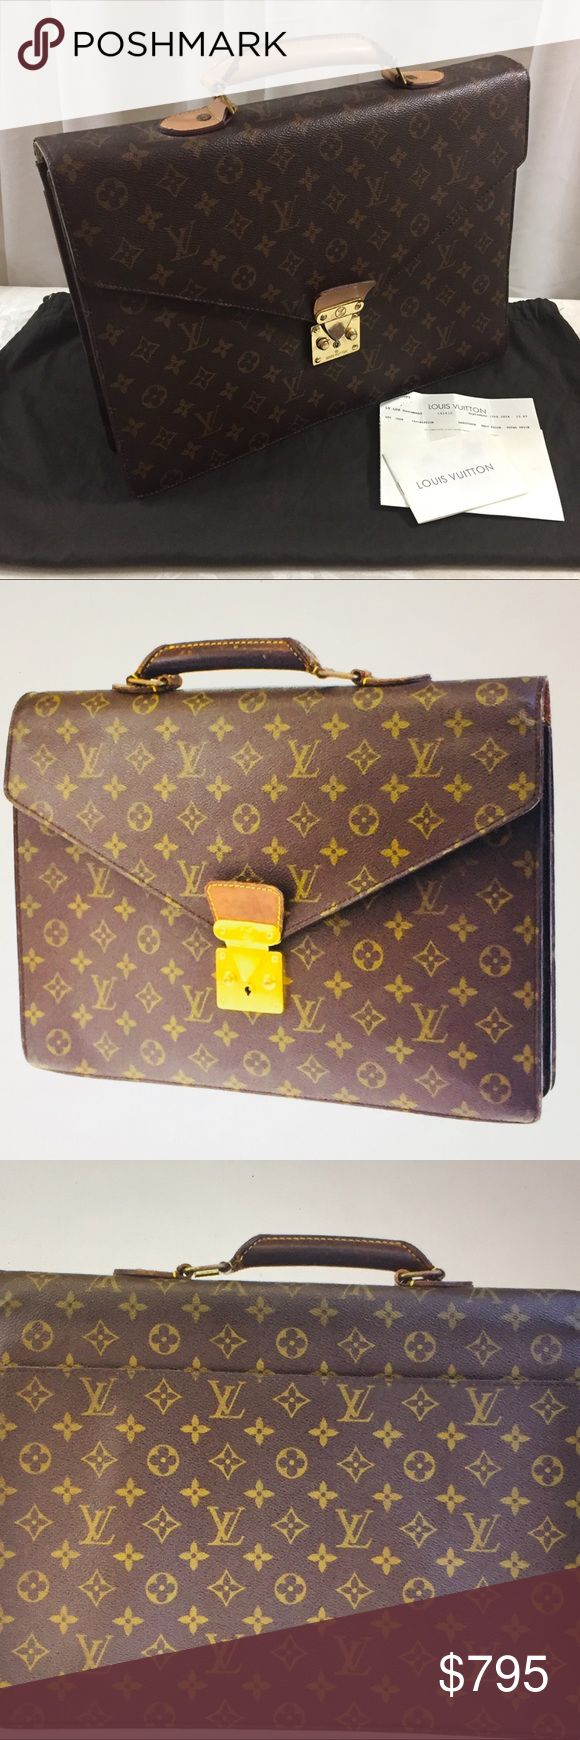 🆕 Louis Vuitton Conseiller Briefcase 💼 Authentic LV serviette Conseiller briefcases, Brown Monogramed Leather, Gold Hardware, one open pocket outside, pocket inside, very good condition, preowned, purchase in 2014, comes with dust bag and store receipt. Louis Vuitton Bags Laptop Bags